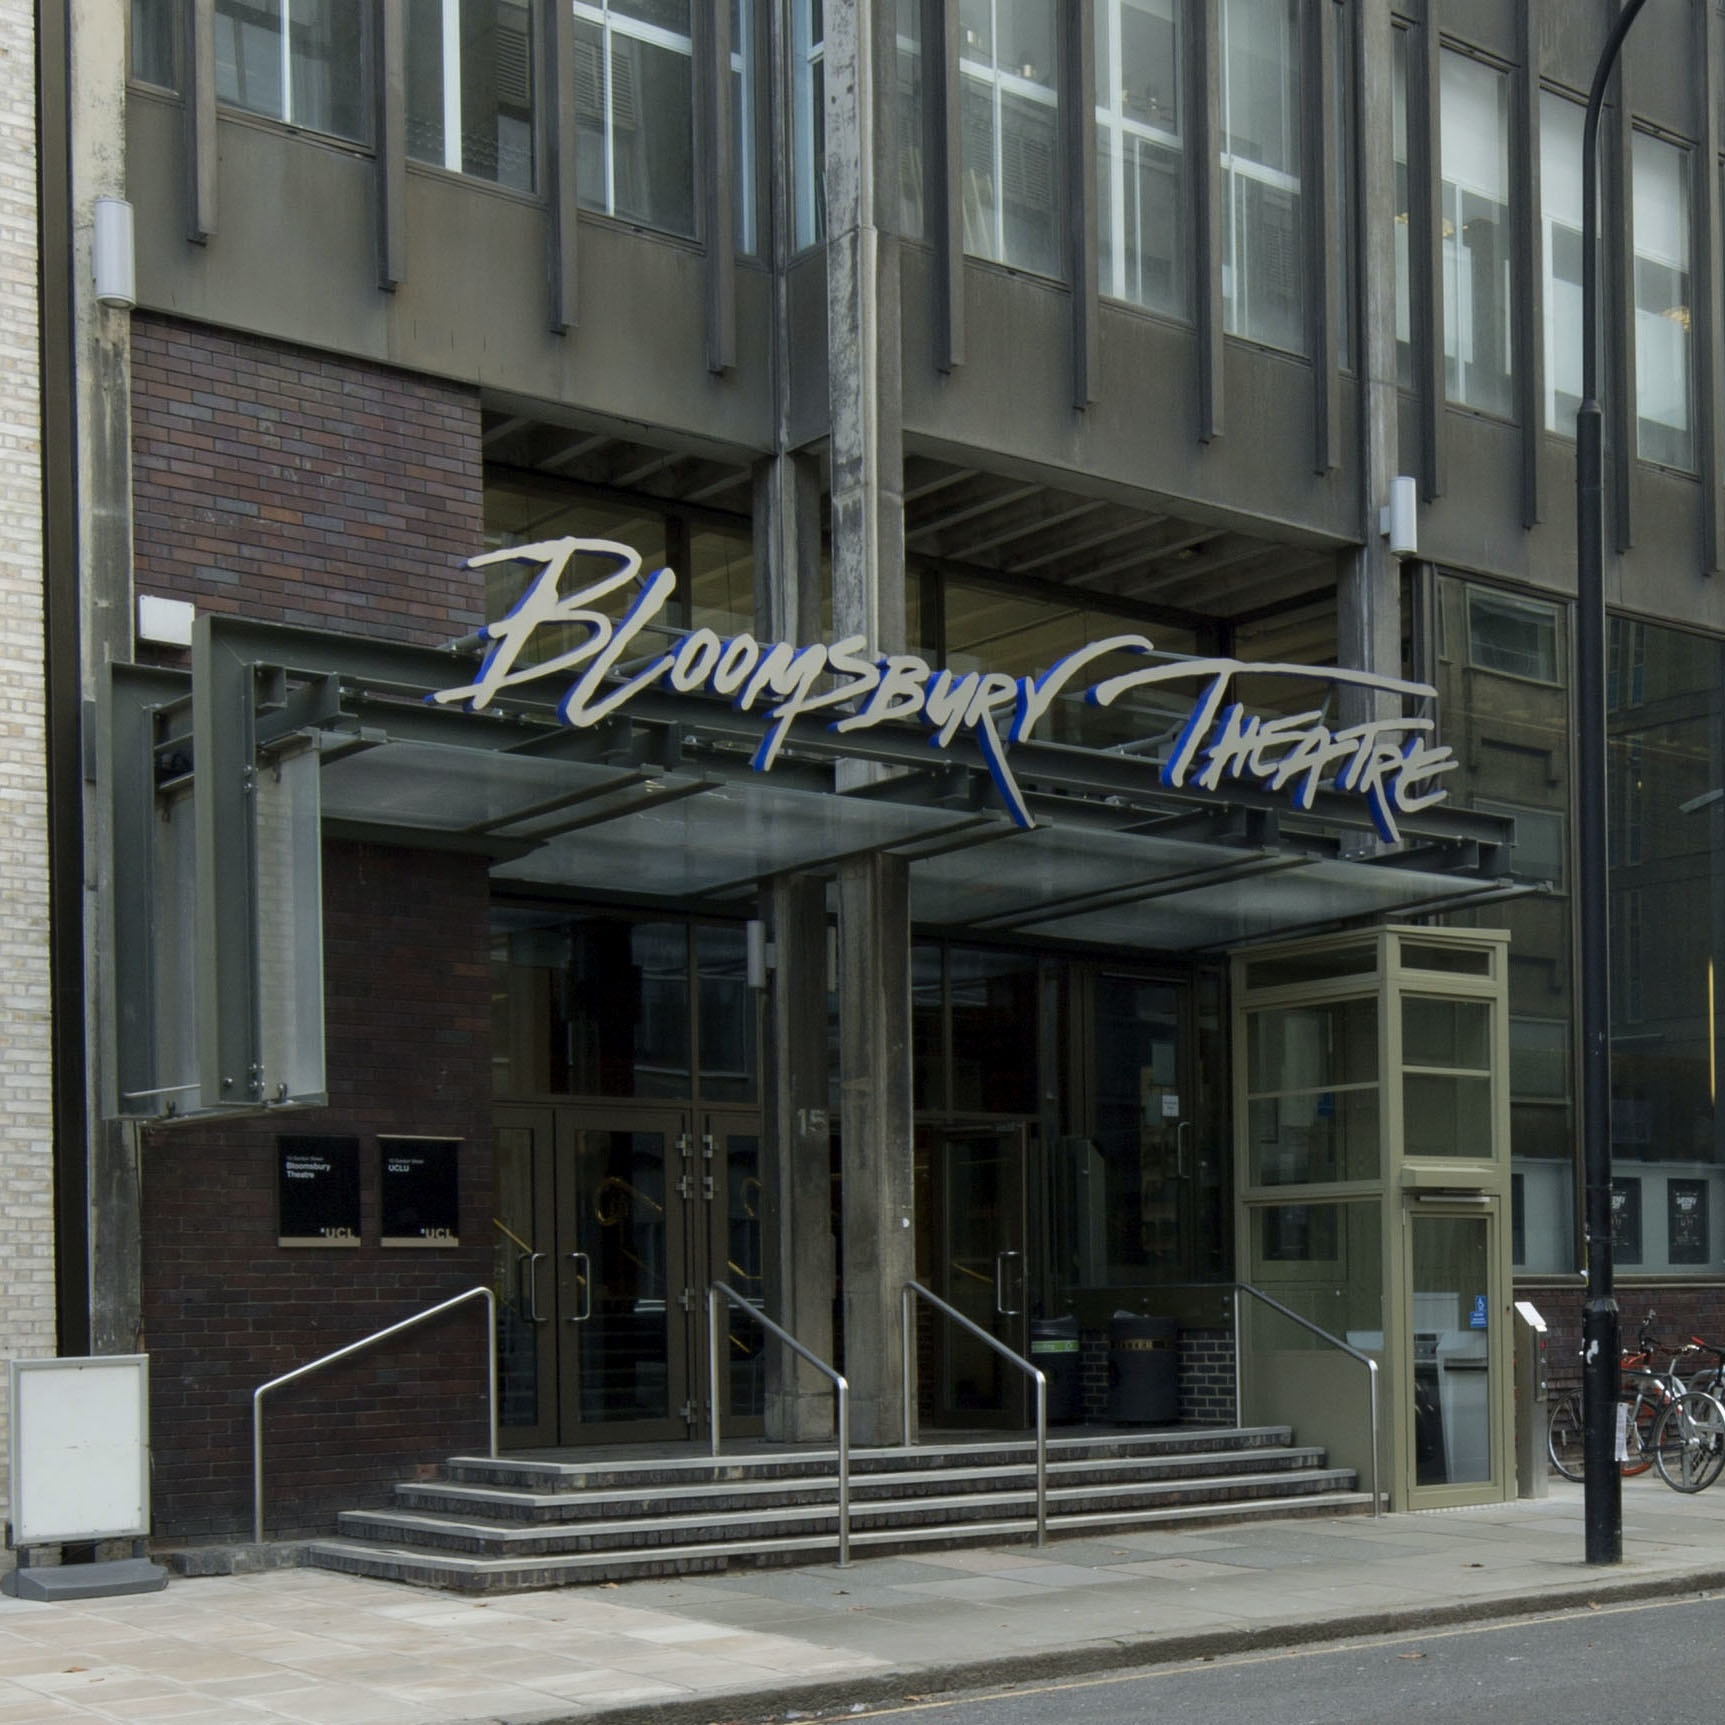 Colour photo of the front of the Bloomsbury Theatre building